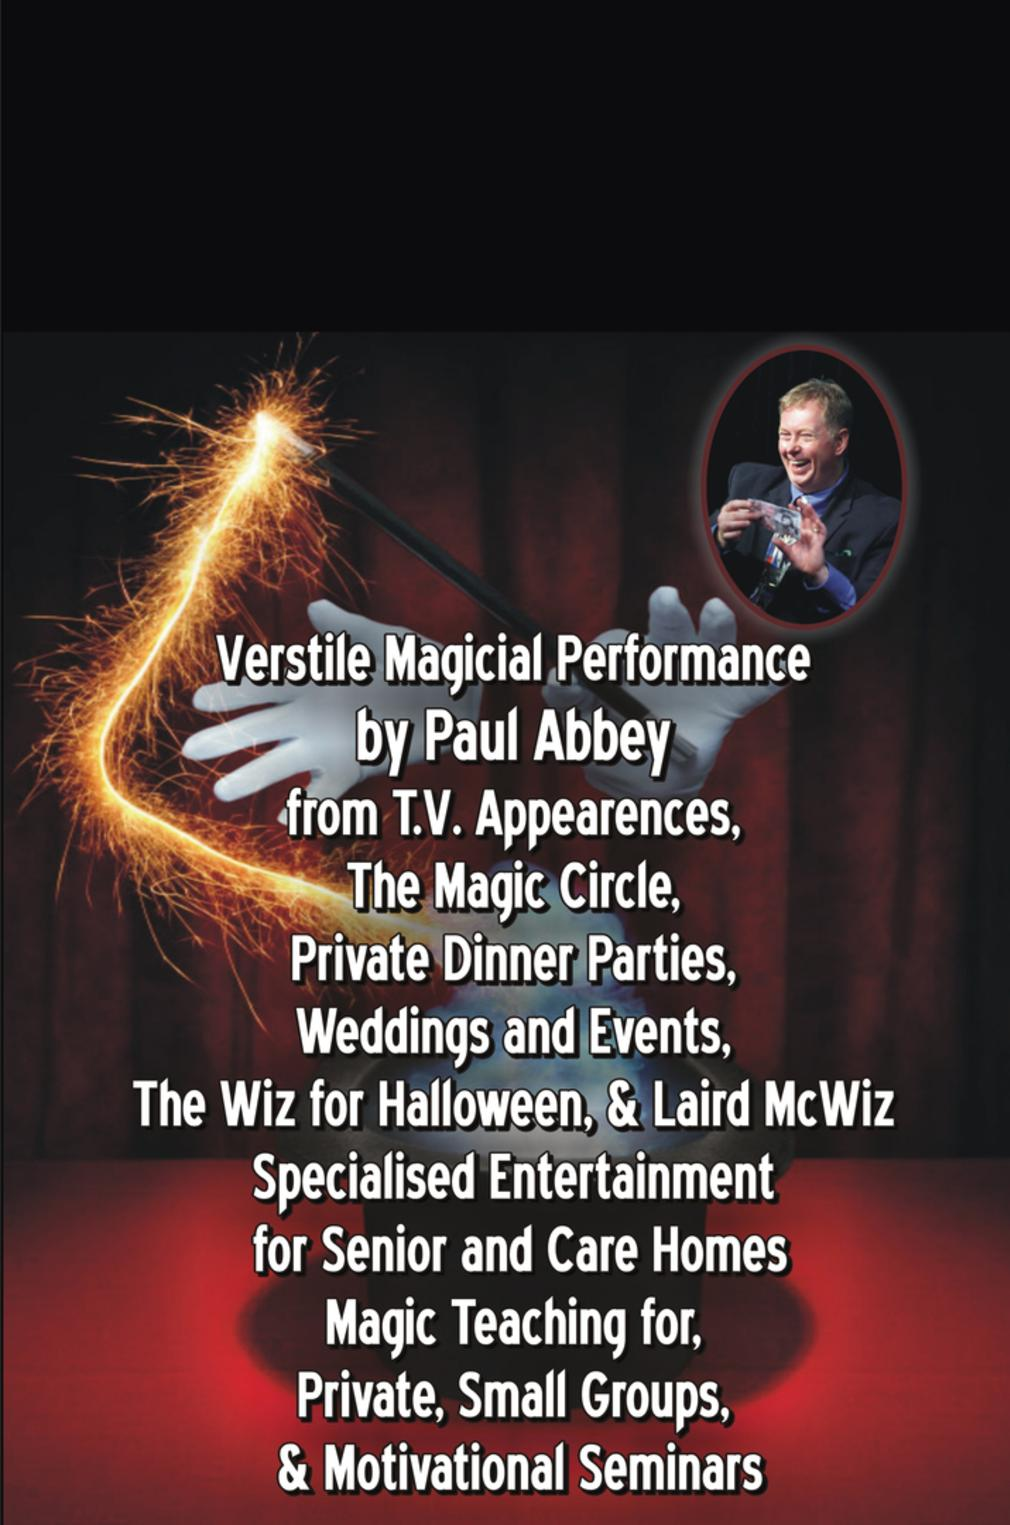 Verstile Magicial Performance by Paul Abbey from T.V. Appearences, The Magic Circle, Private Dinner Parties, Weddings and Events, The Wiz for Halloween, & Laird McWiz Specialised Entertainment for Senior and Care Homes Magic Teaching for, Private, Small Groups, & Motivational Seminars